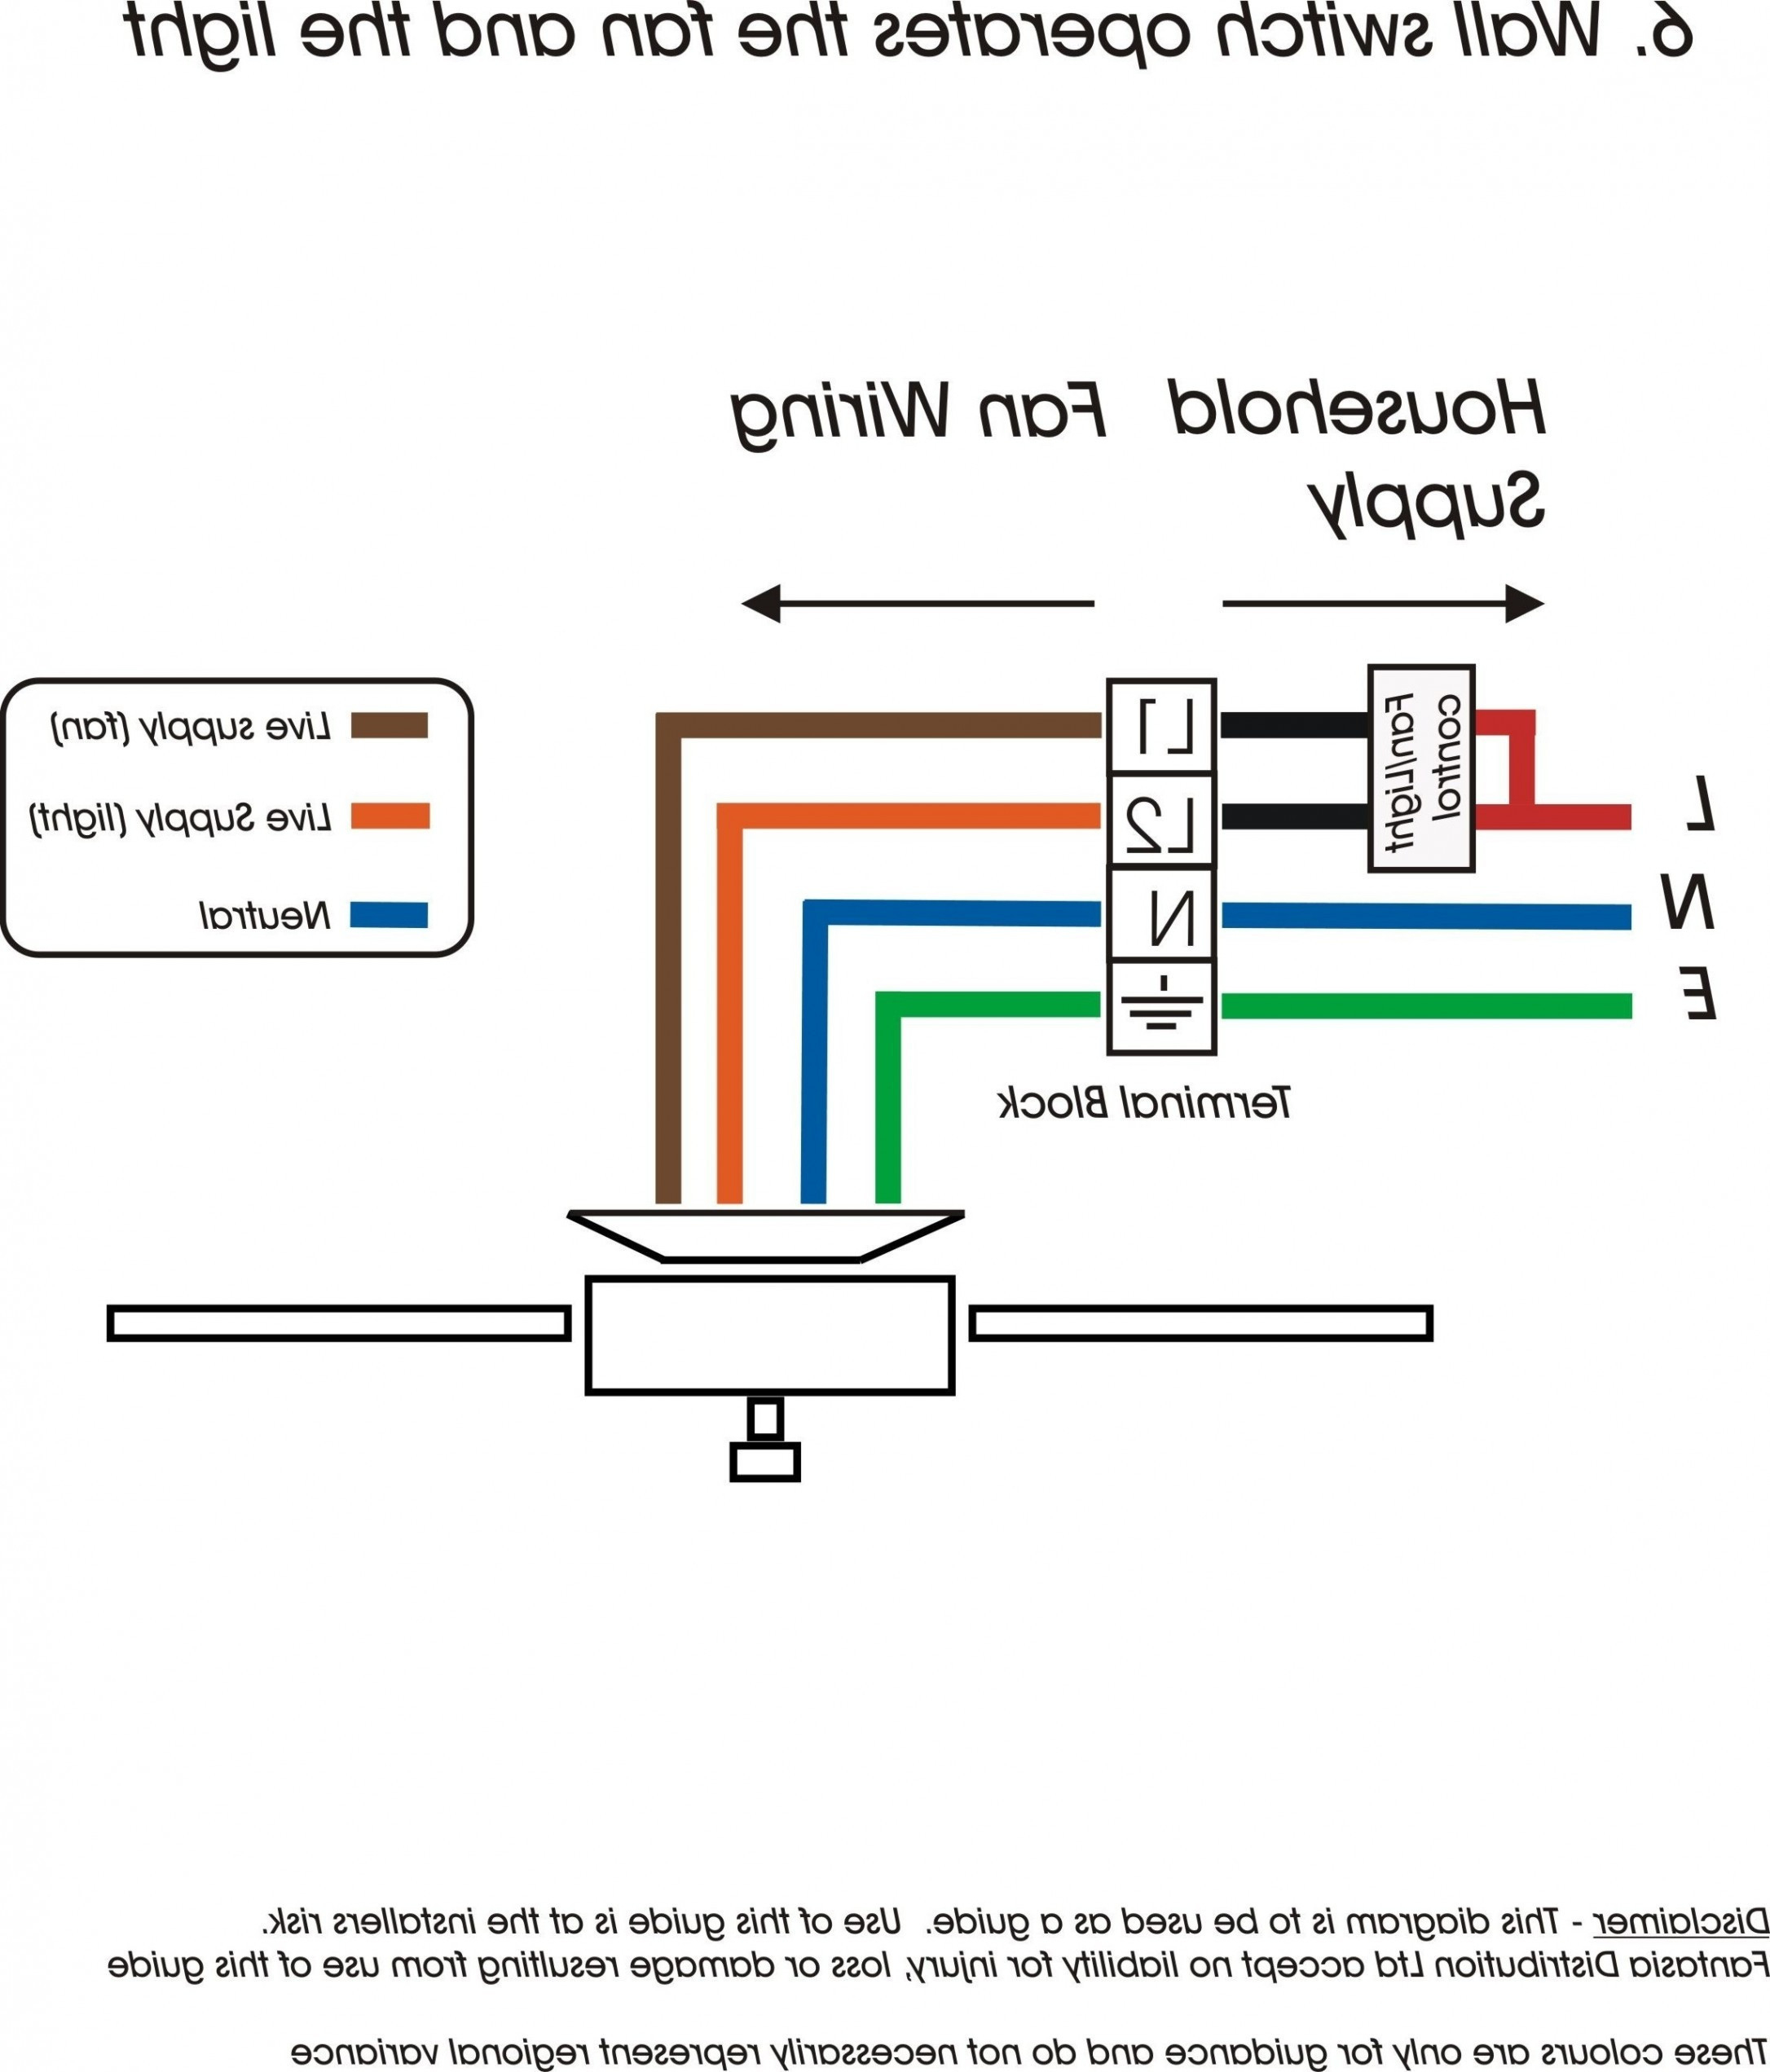 Wiring Diagram 4 Way Light Switch - Mikulskilawoffices - Light Fixture Wiring Diagram